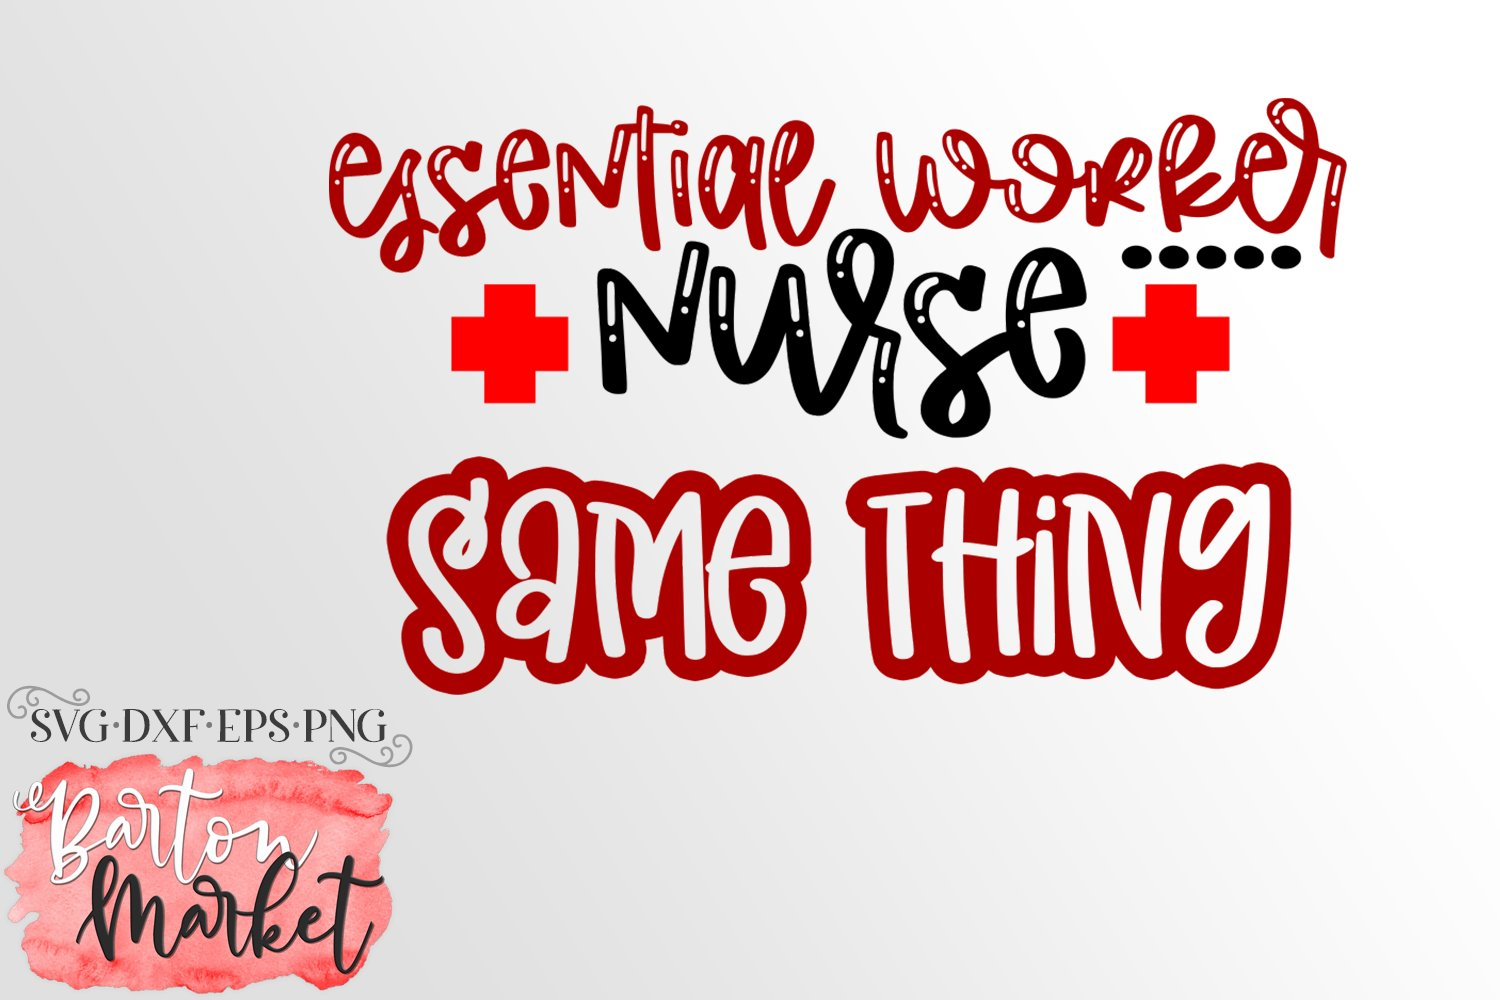 Essential Worker Nurse Same Thing SVG DXF EPS PNG example image 2